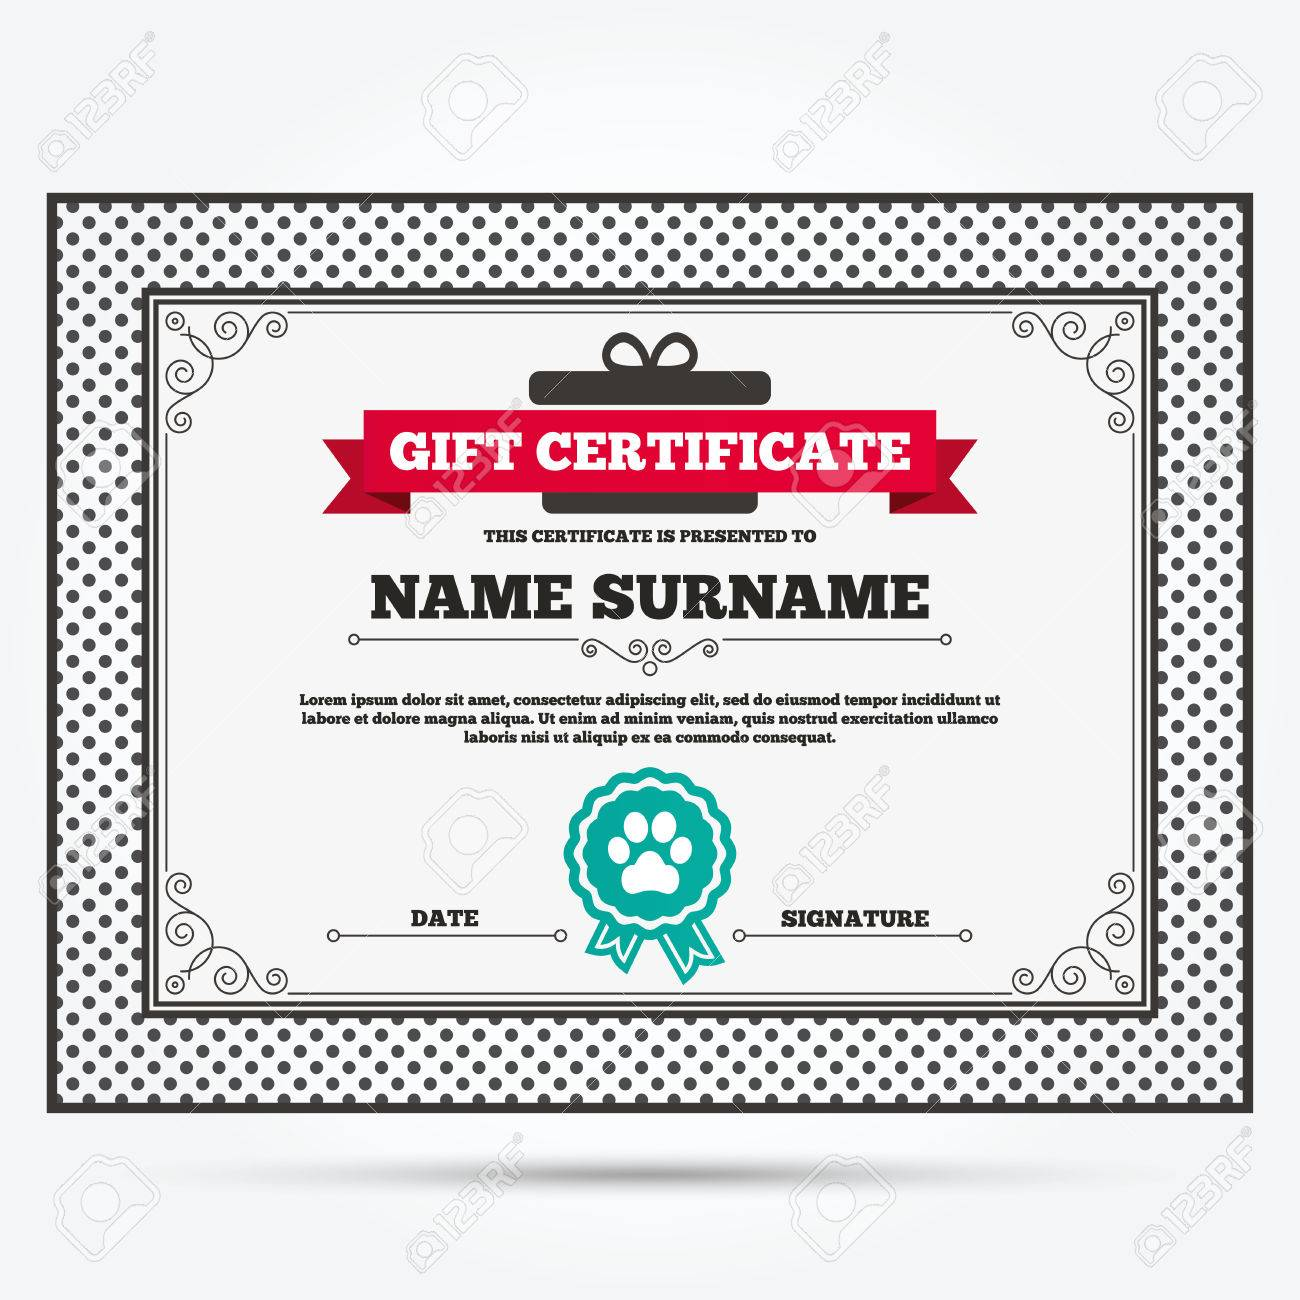 Gift Certificate Dog Paw Sign Icon Pets Symbol Template With - Dog gift certificate template free